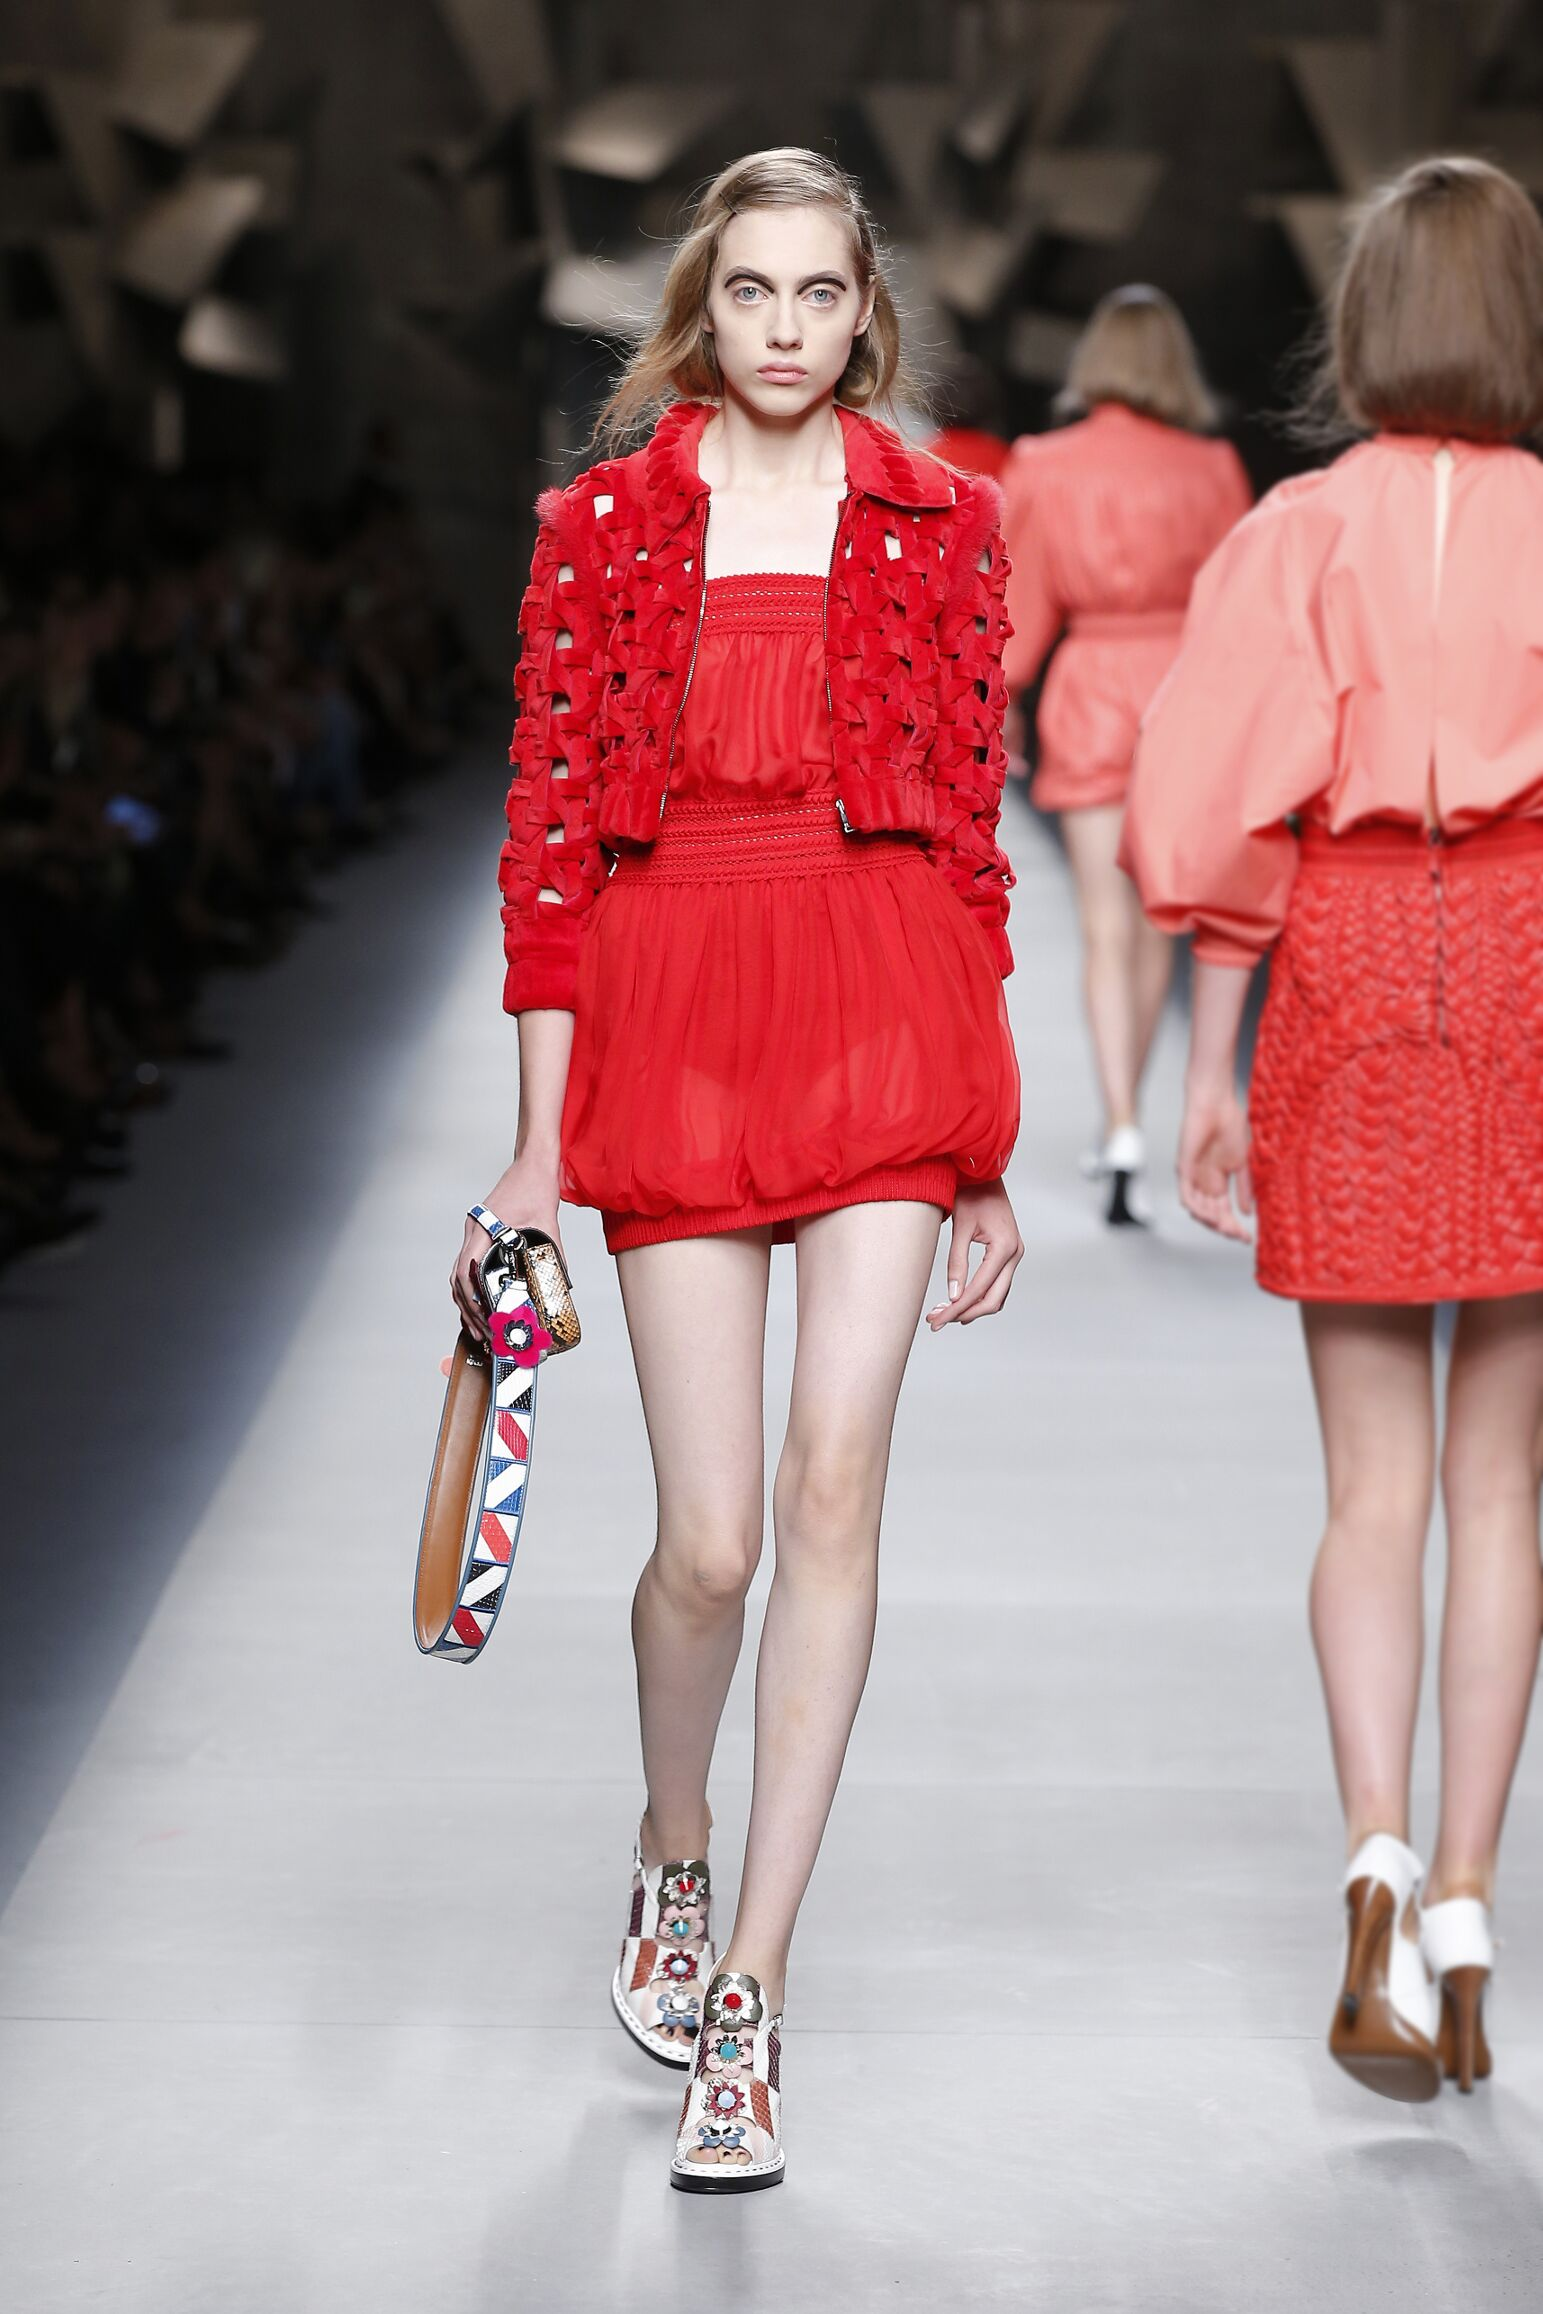 FENDI SPRING SUMMER 2016 WOMEN'S COLLECTION